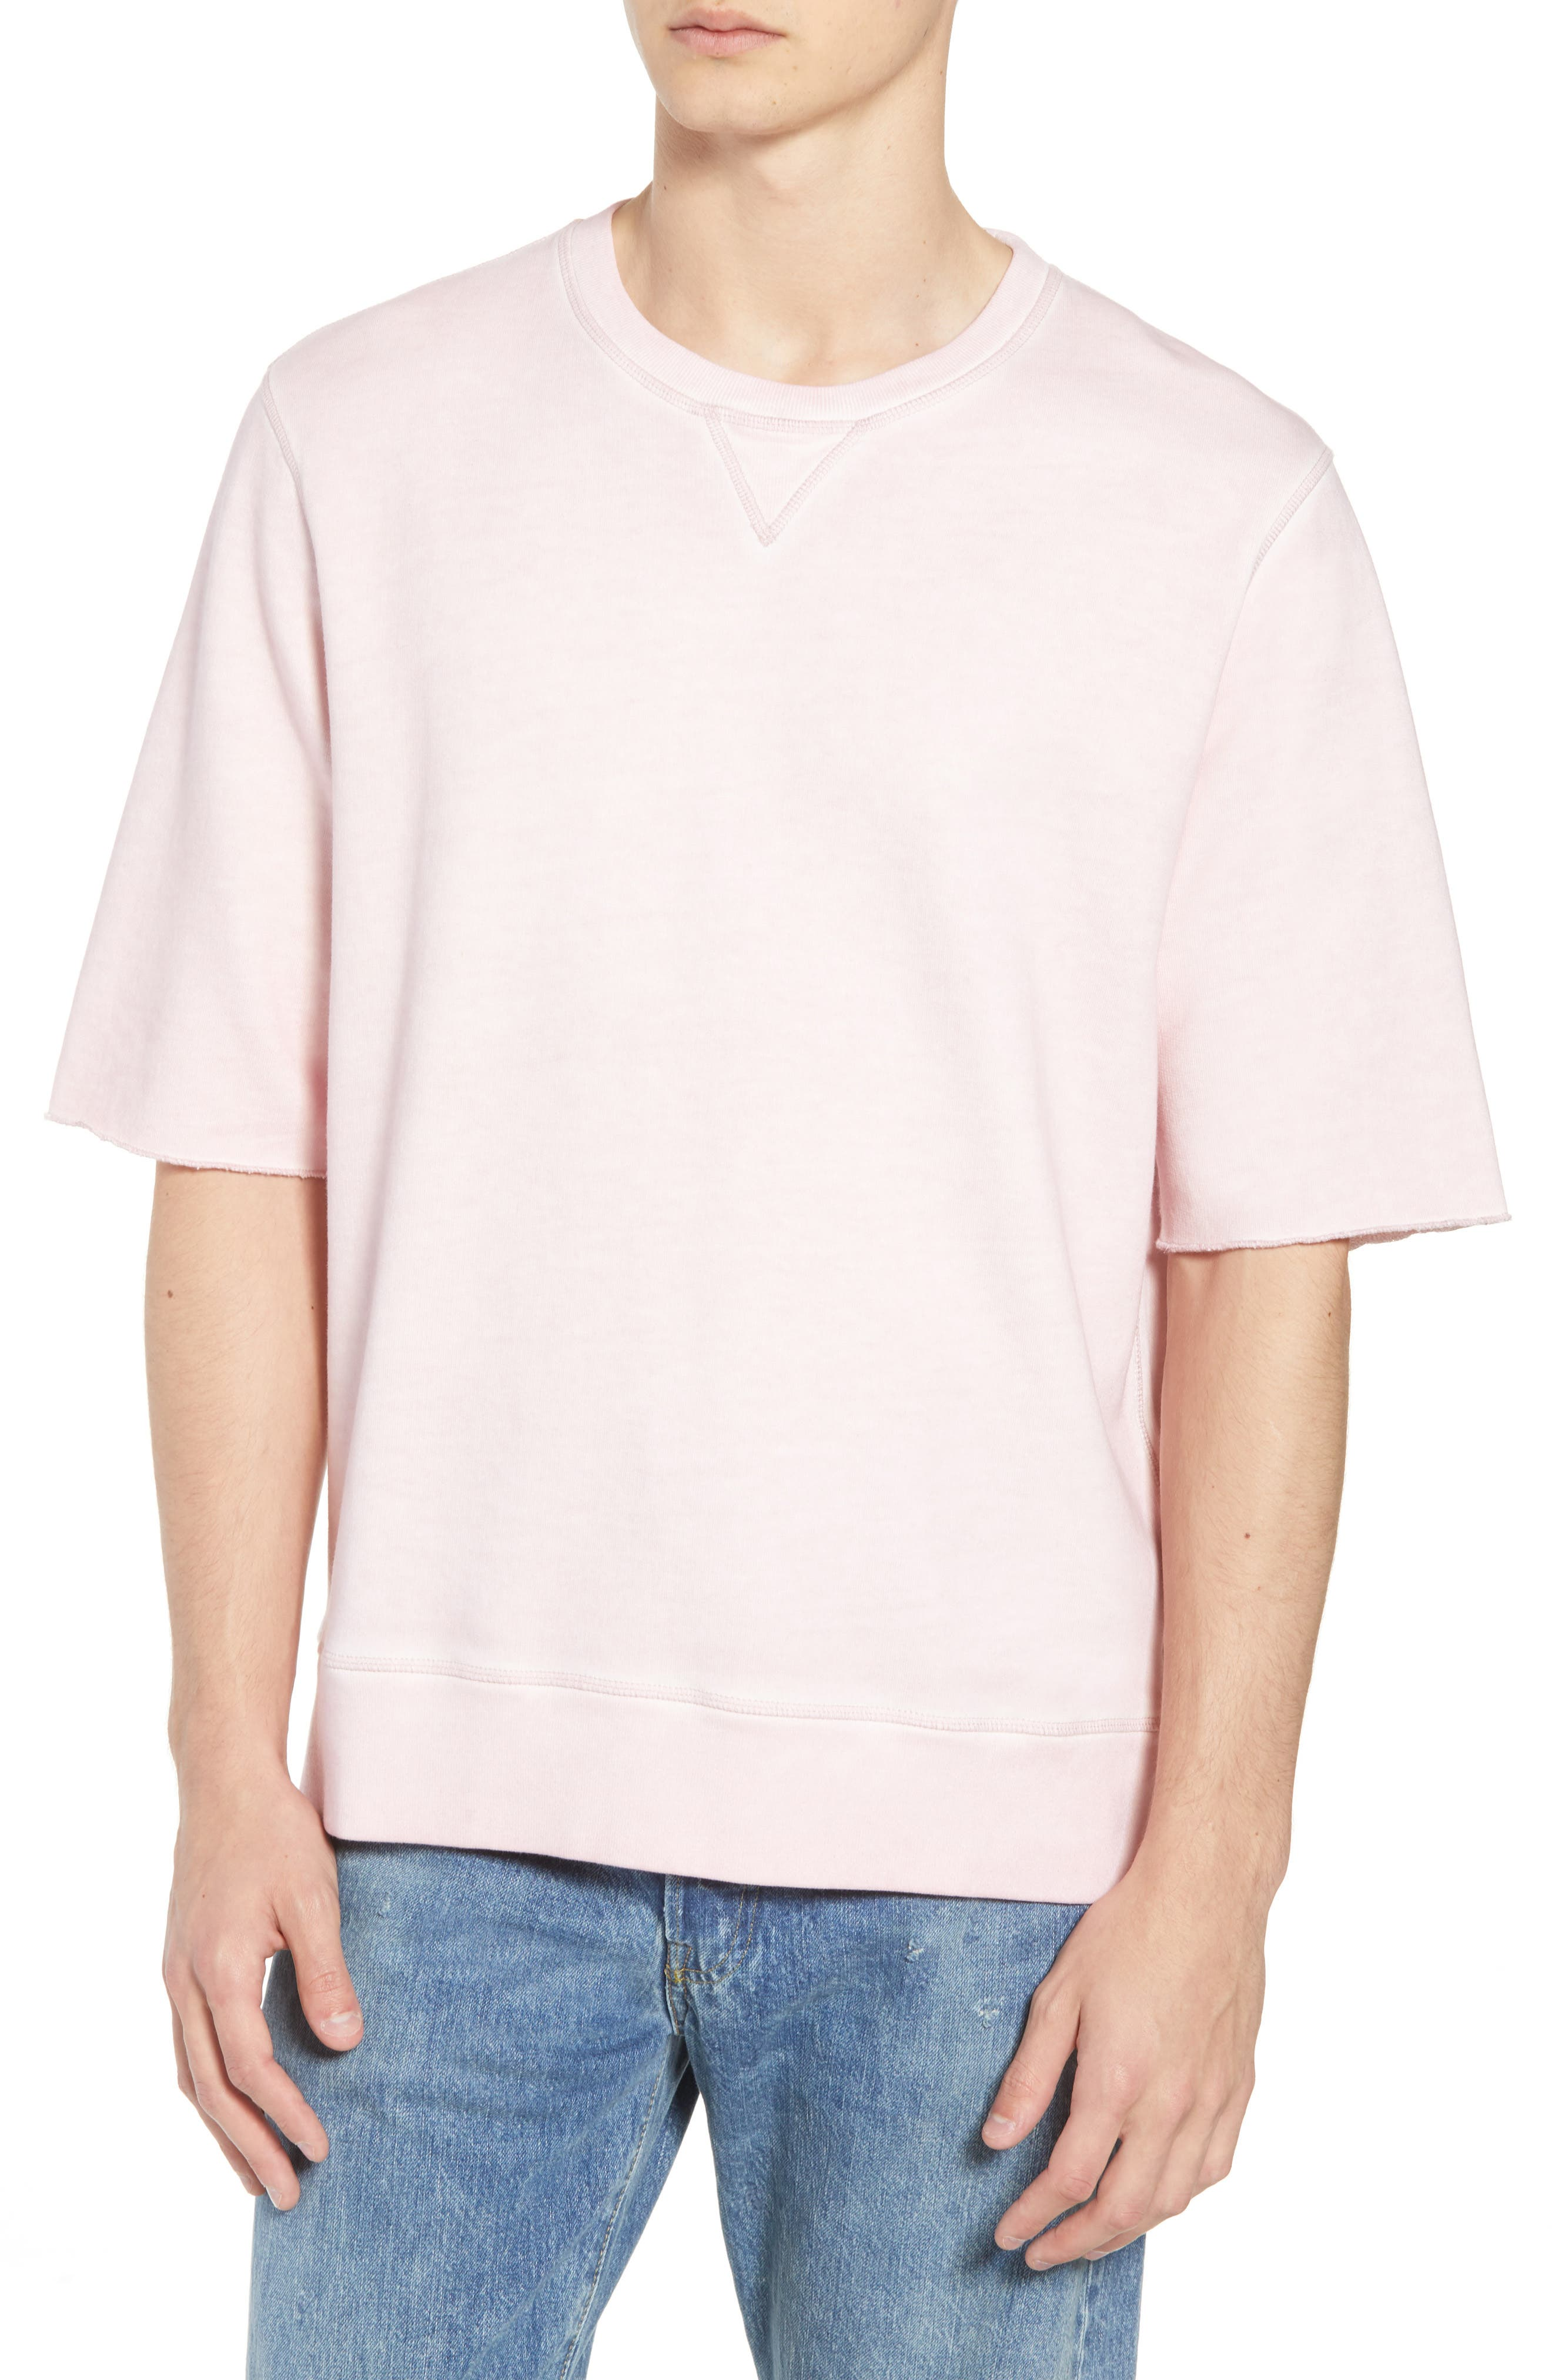 Levis'<sup>®</sup> Made & Crafted<sup>™</sup> Standard Fit T-Shirt,                             Main thumbnail 1, color,                             500